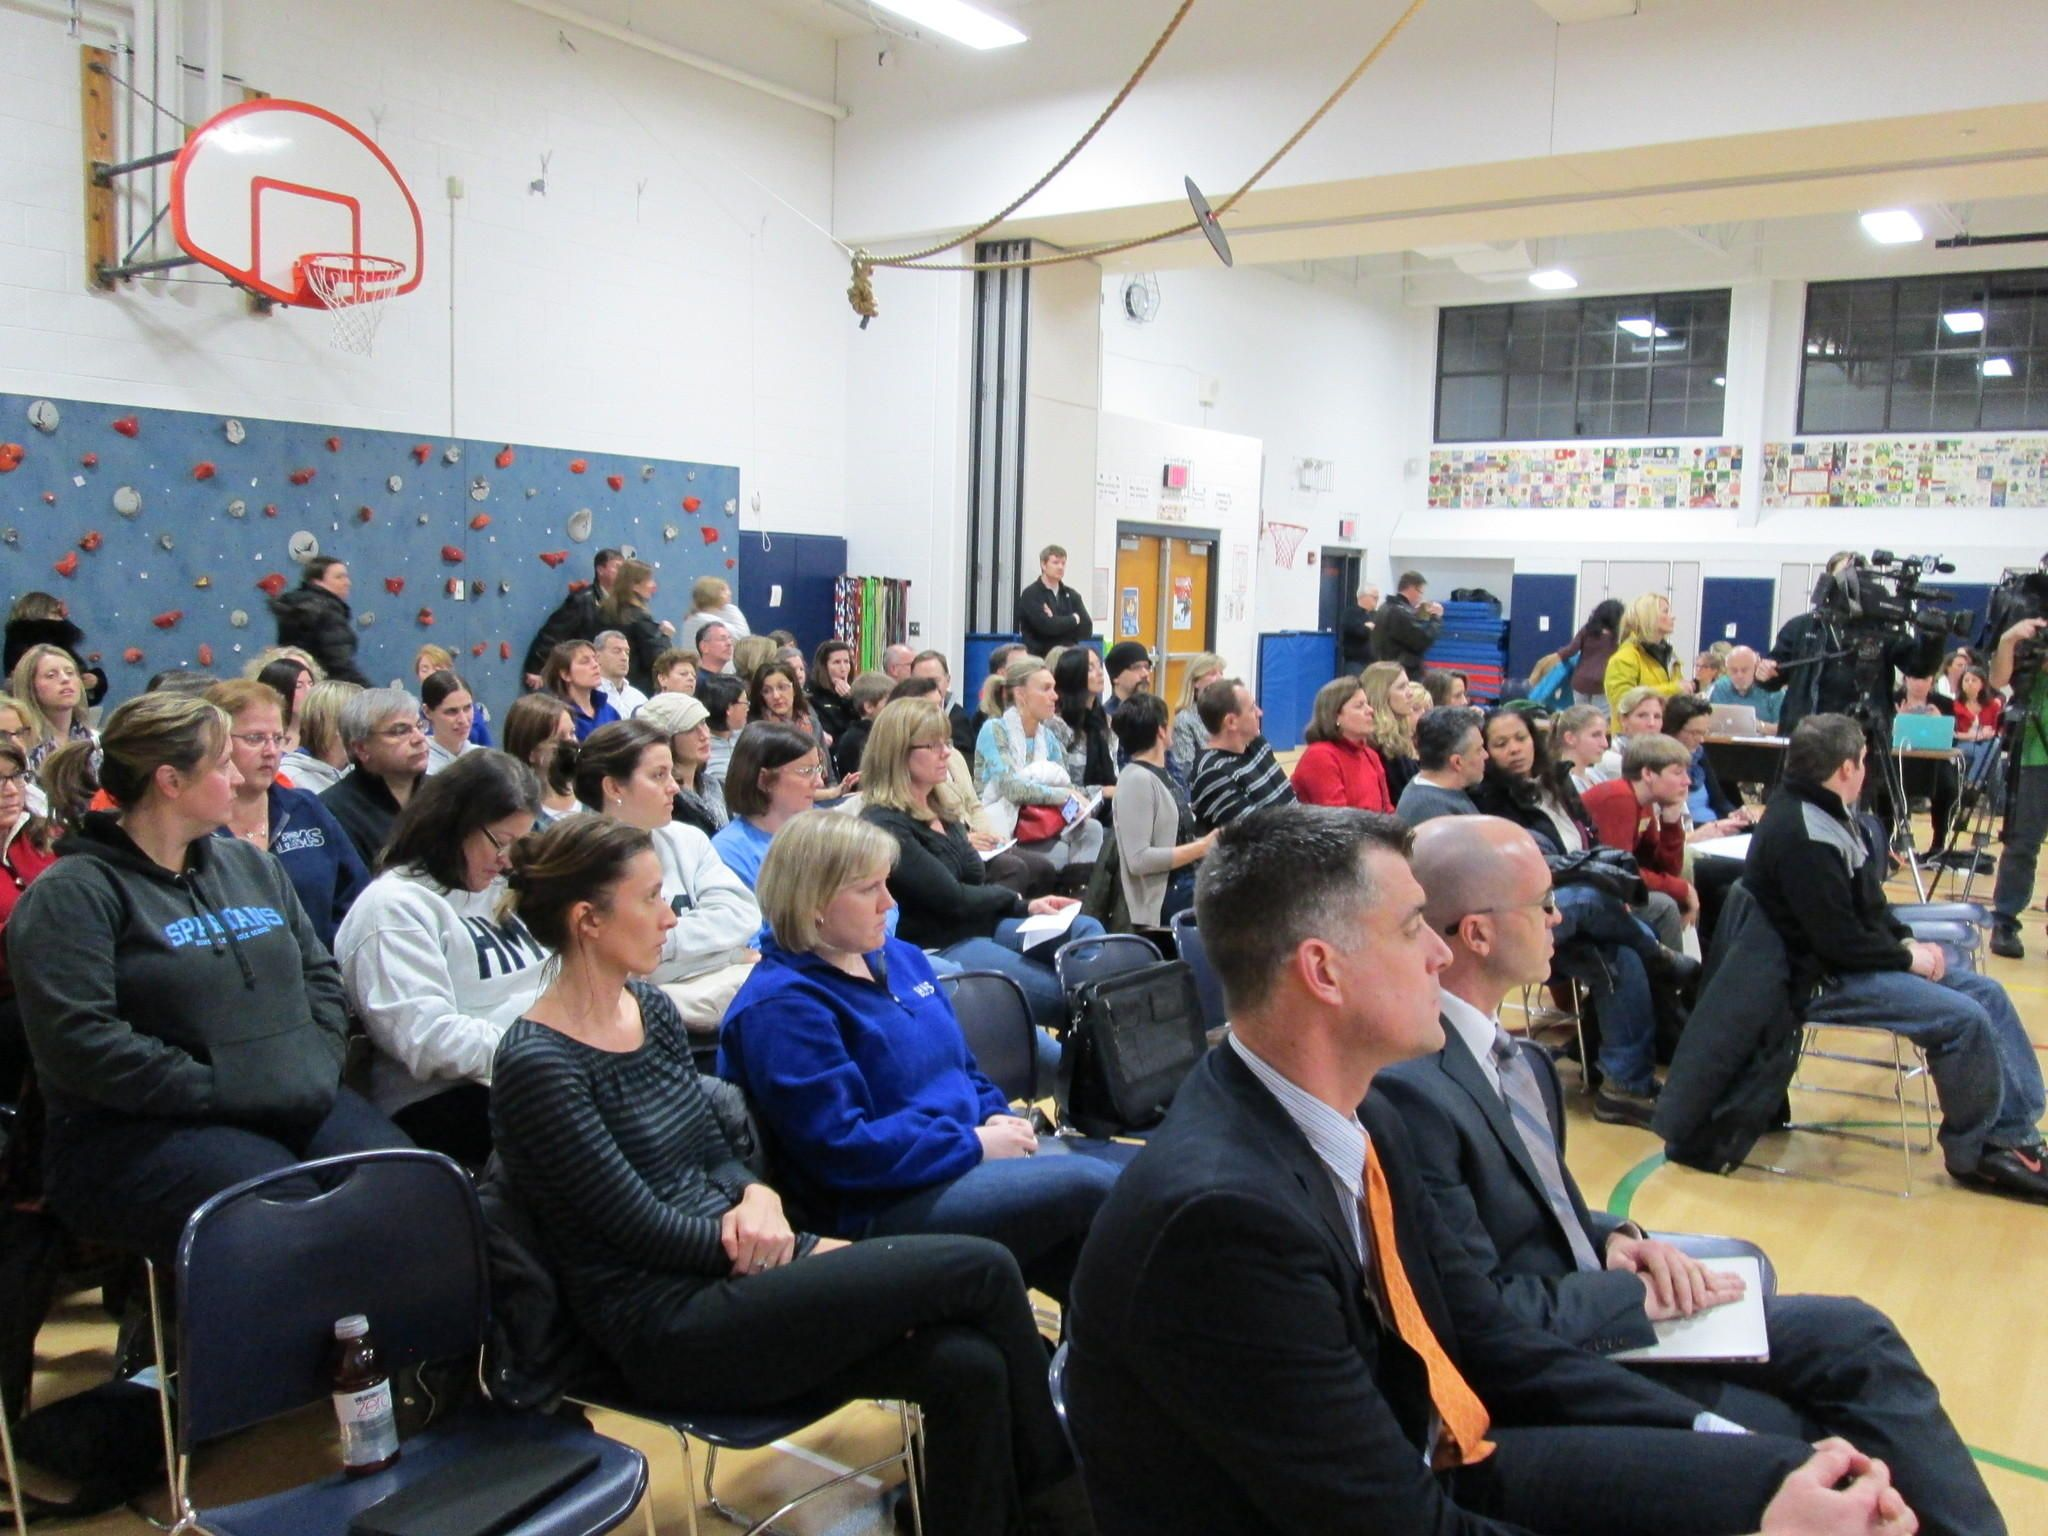 Parents frustrated as mold closes Hinsdale Middle School